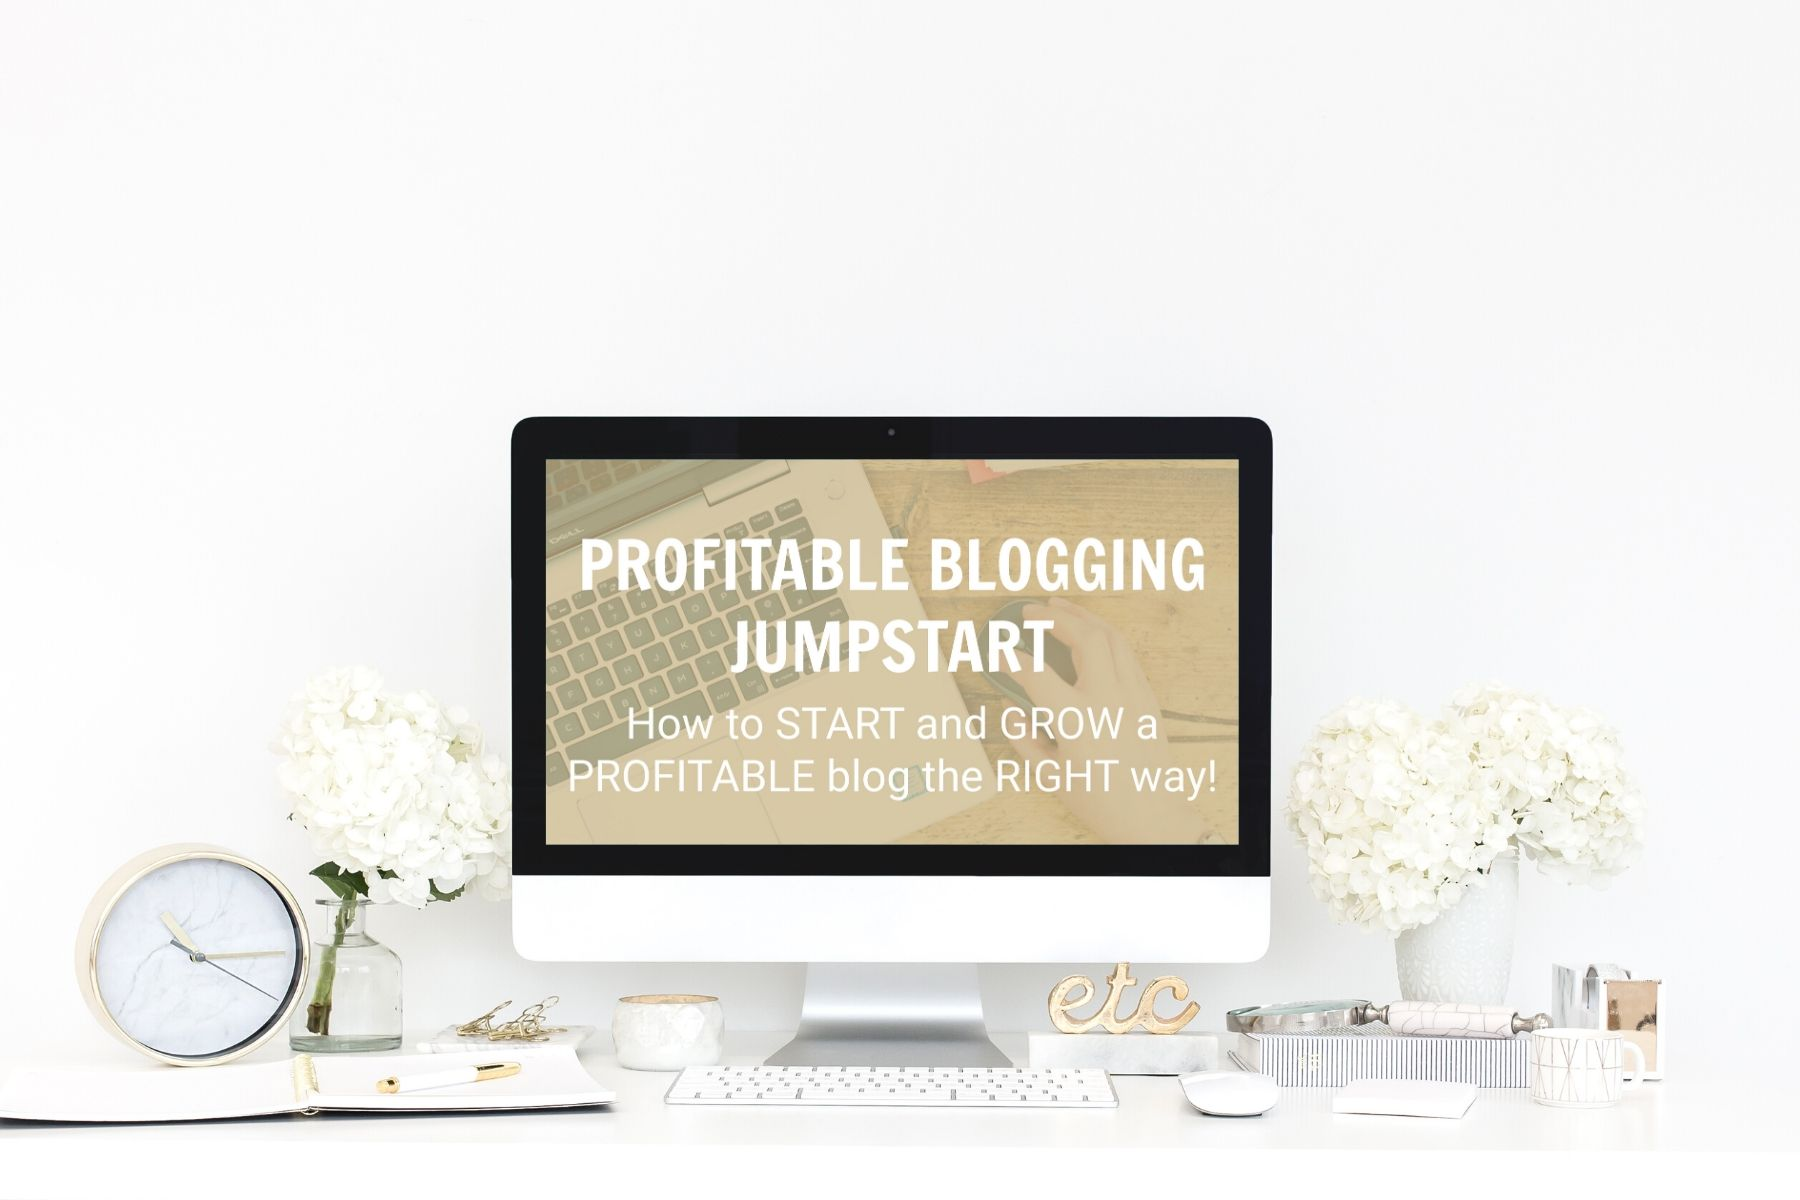 DO YOU WANT TO BE YOUR OWN BOSS? Do you want to work the hours YOU want to work? Have a job you truly ENJOY? Even LOOK FORWARD to starting work each morning? Then #ProfitableBloggingJumpstart is for you! I show you how to start a blog the RIGHT way, how to grow your new blog FAST and, most importantly, how to MAKE MONEY with your new blog ASAP!! #profitableblog #profitableblogging #blogging #newblog #newblogger #newbloggers #startablog #startblogging #startaprofitableblog #makemoneyblogging